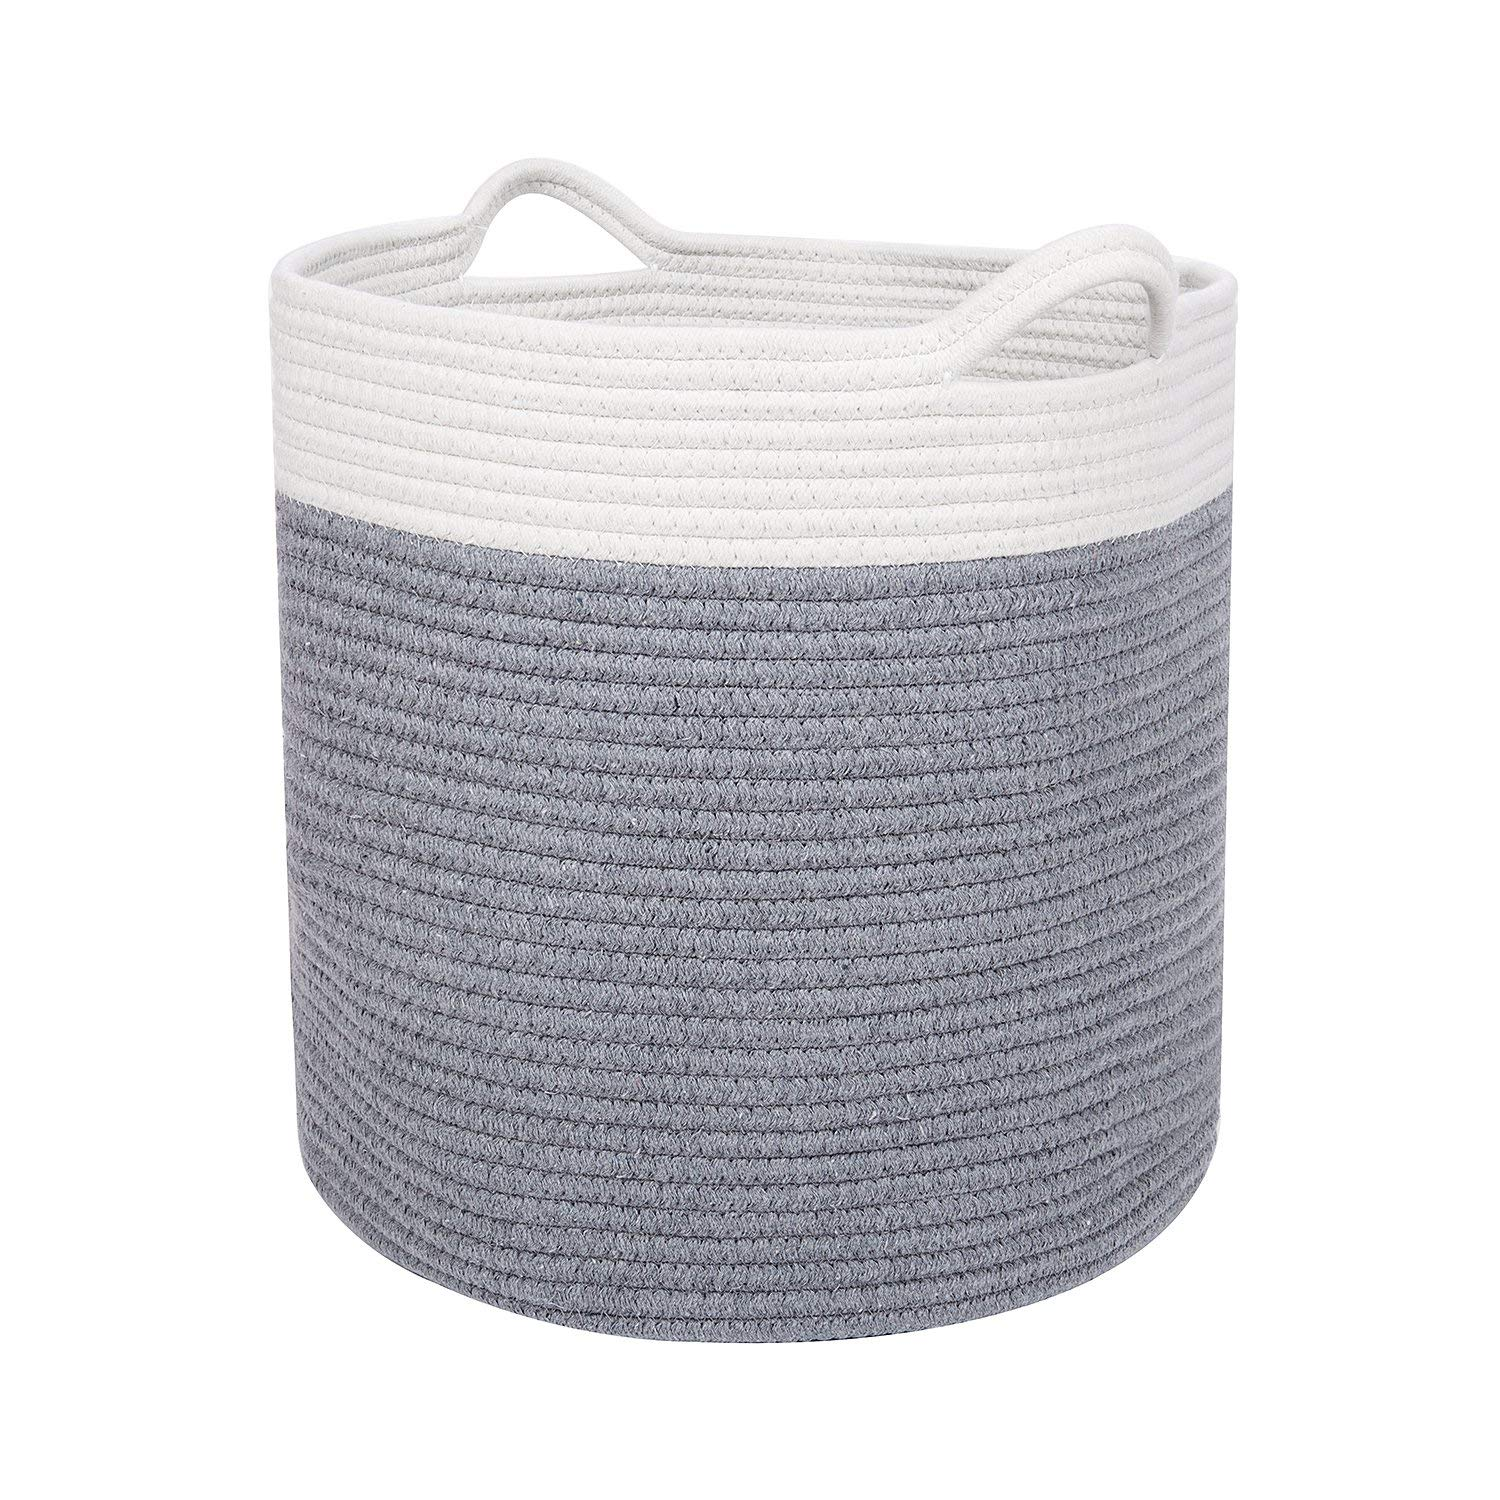 Cotton Laundry Storage Basket Organize Clothes, Gifts, Toys & Diapers Cute, Neutral White & Gray Foldable Laundry Baskets